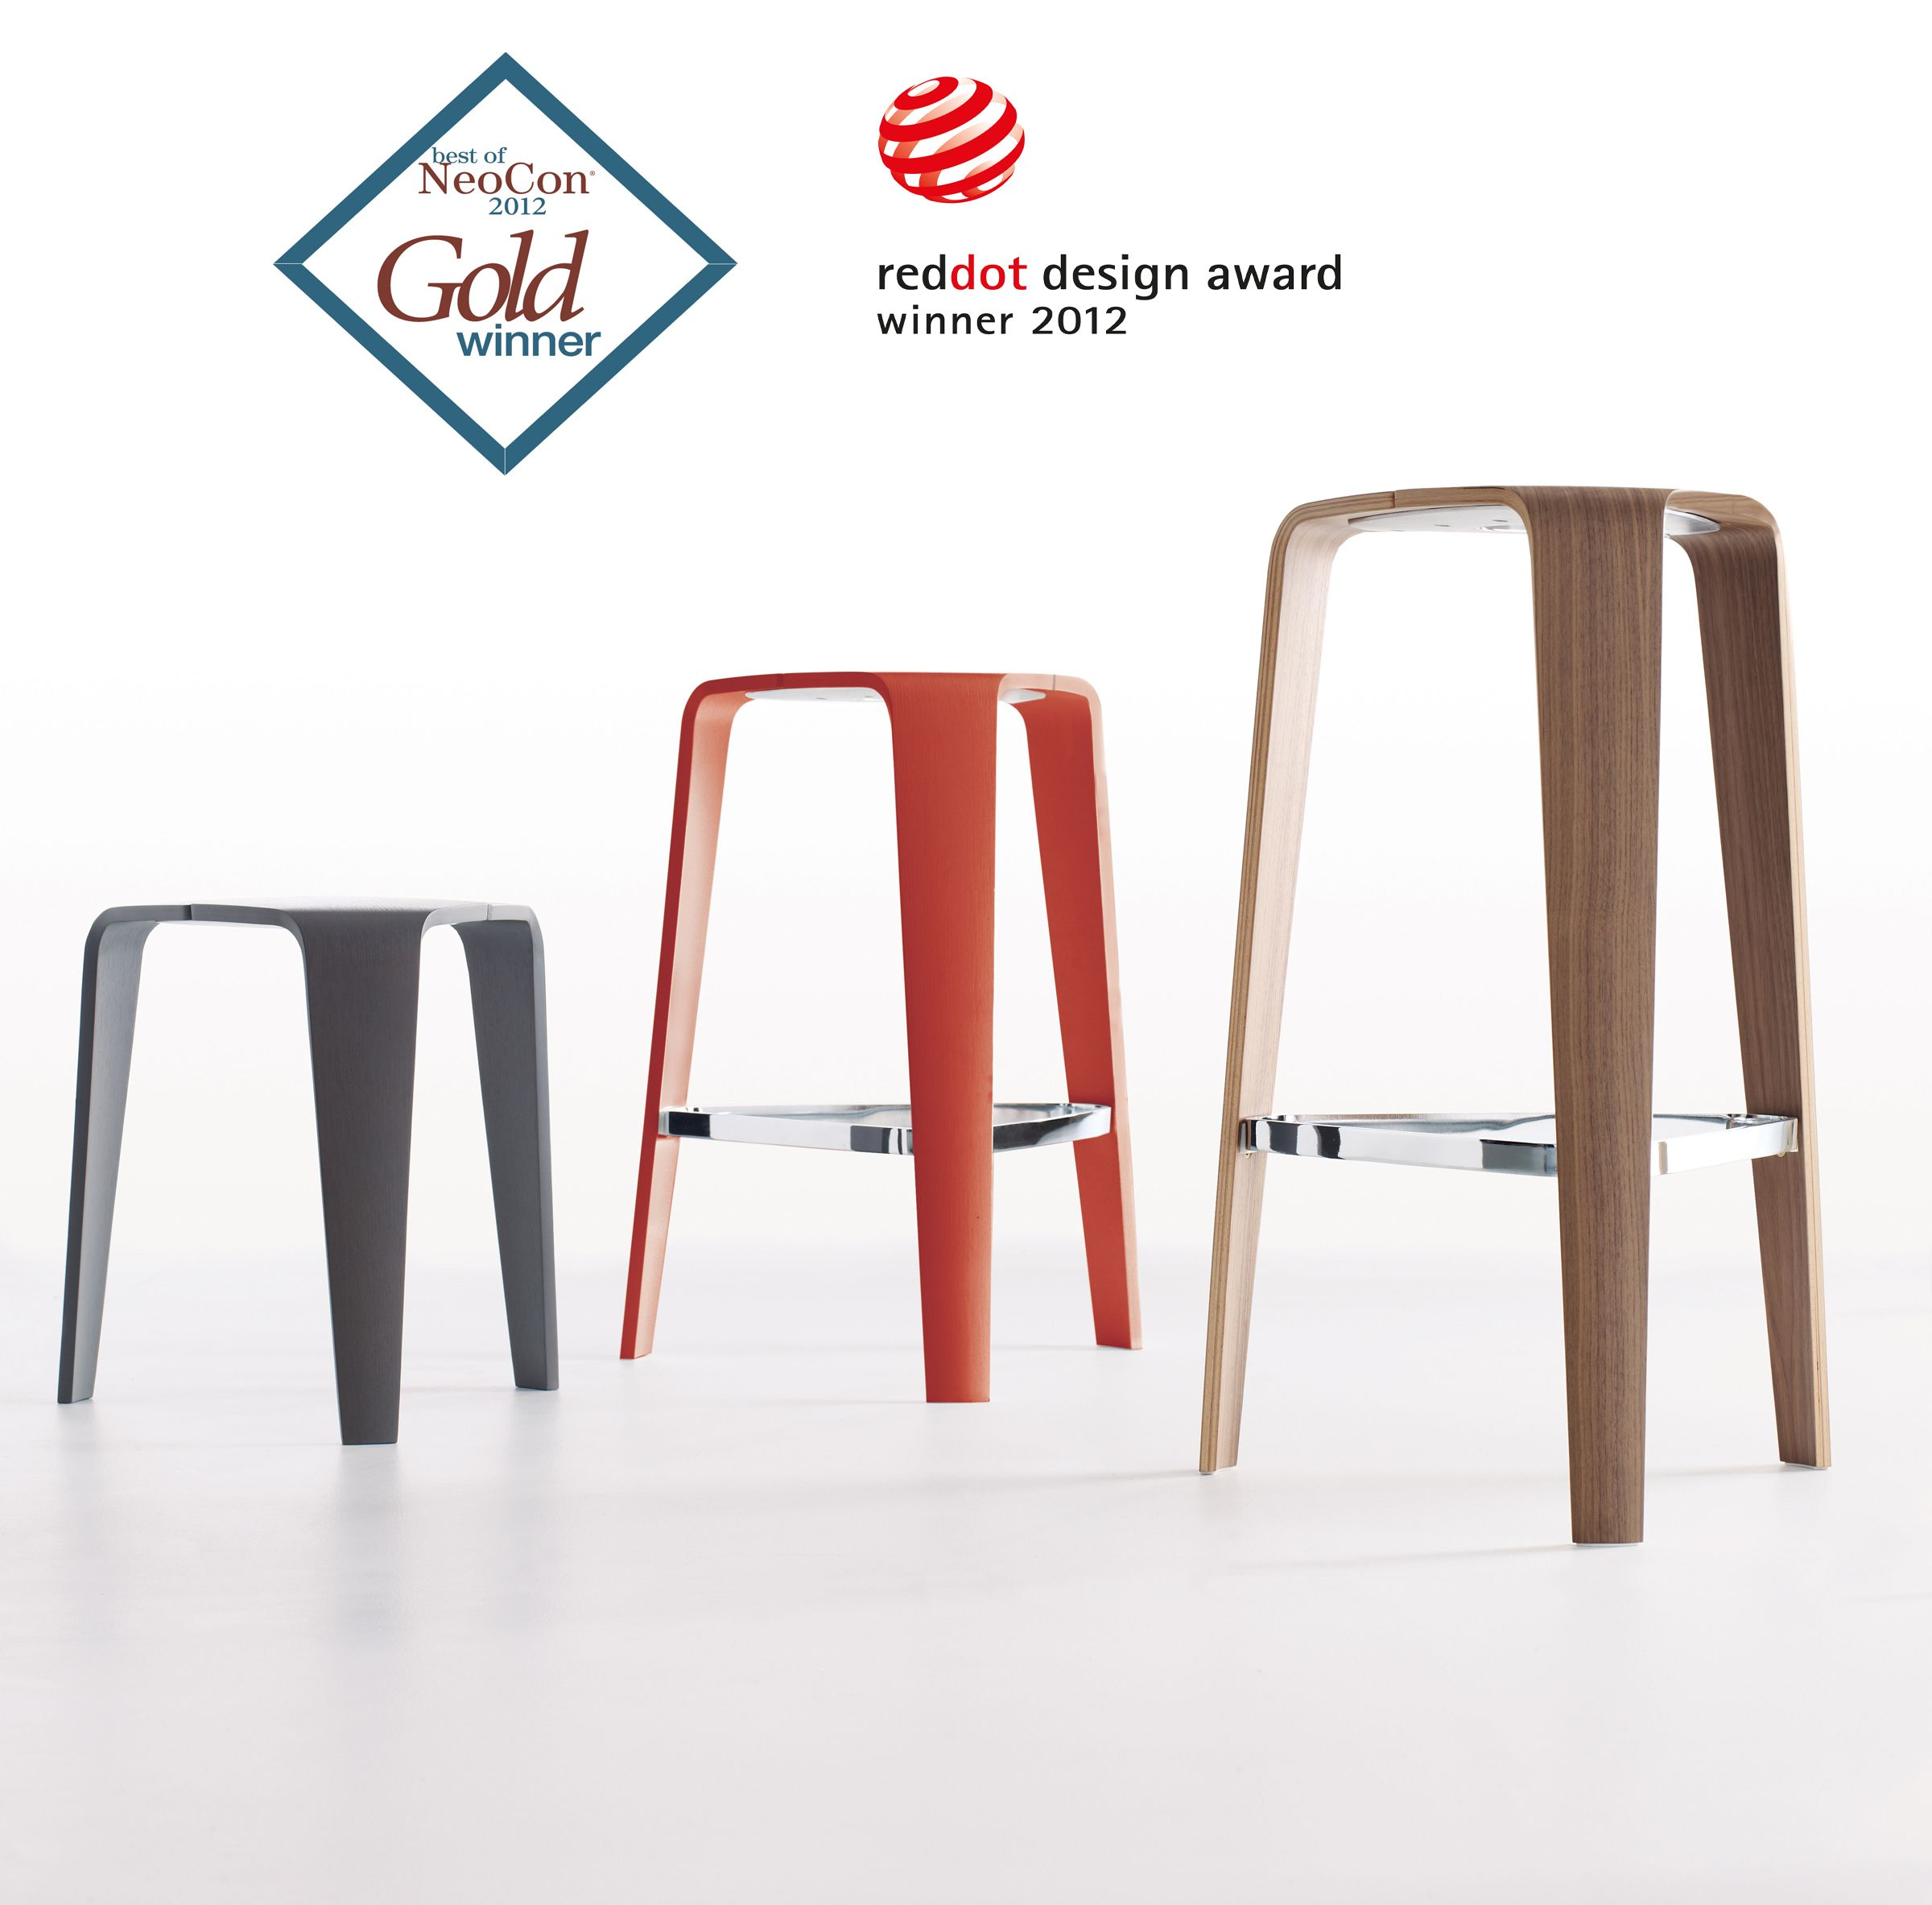 Tre Winner Of Best Of Neocon And Reddot Product Design Awards Neocon12 Reddot Chairs